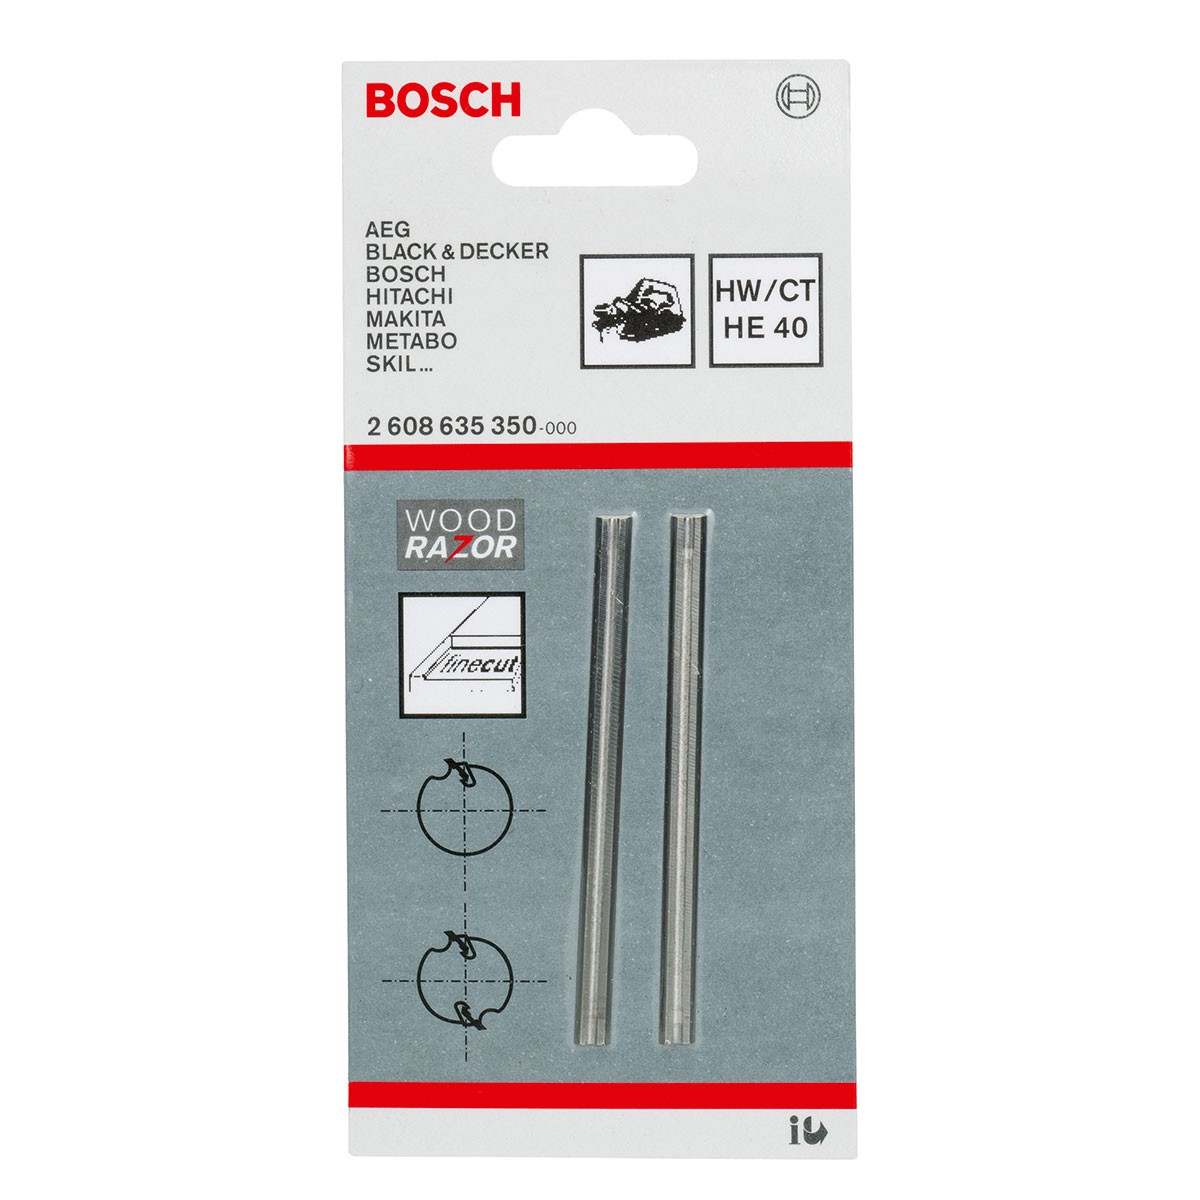 Bosch Tungsten Carbide Woodrazor Planer Blades 2x 82mm 2608635350